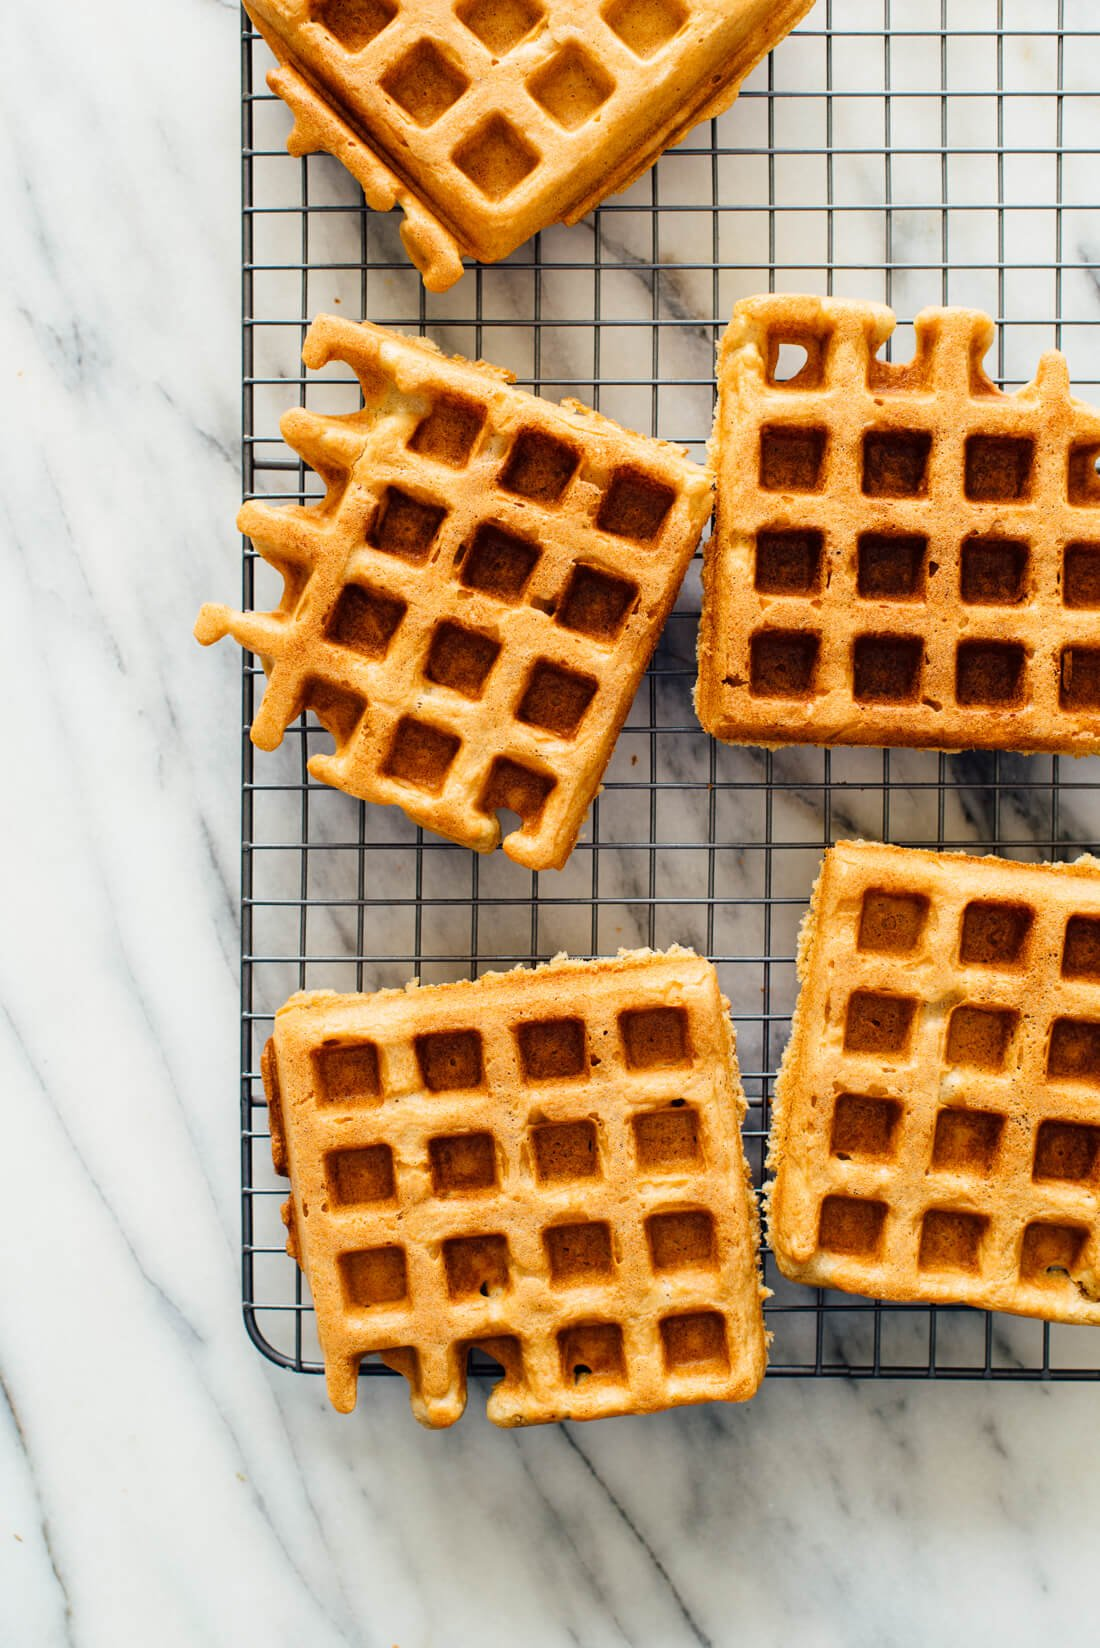 Gluten-free oat flour waffles on cooling rack